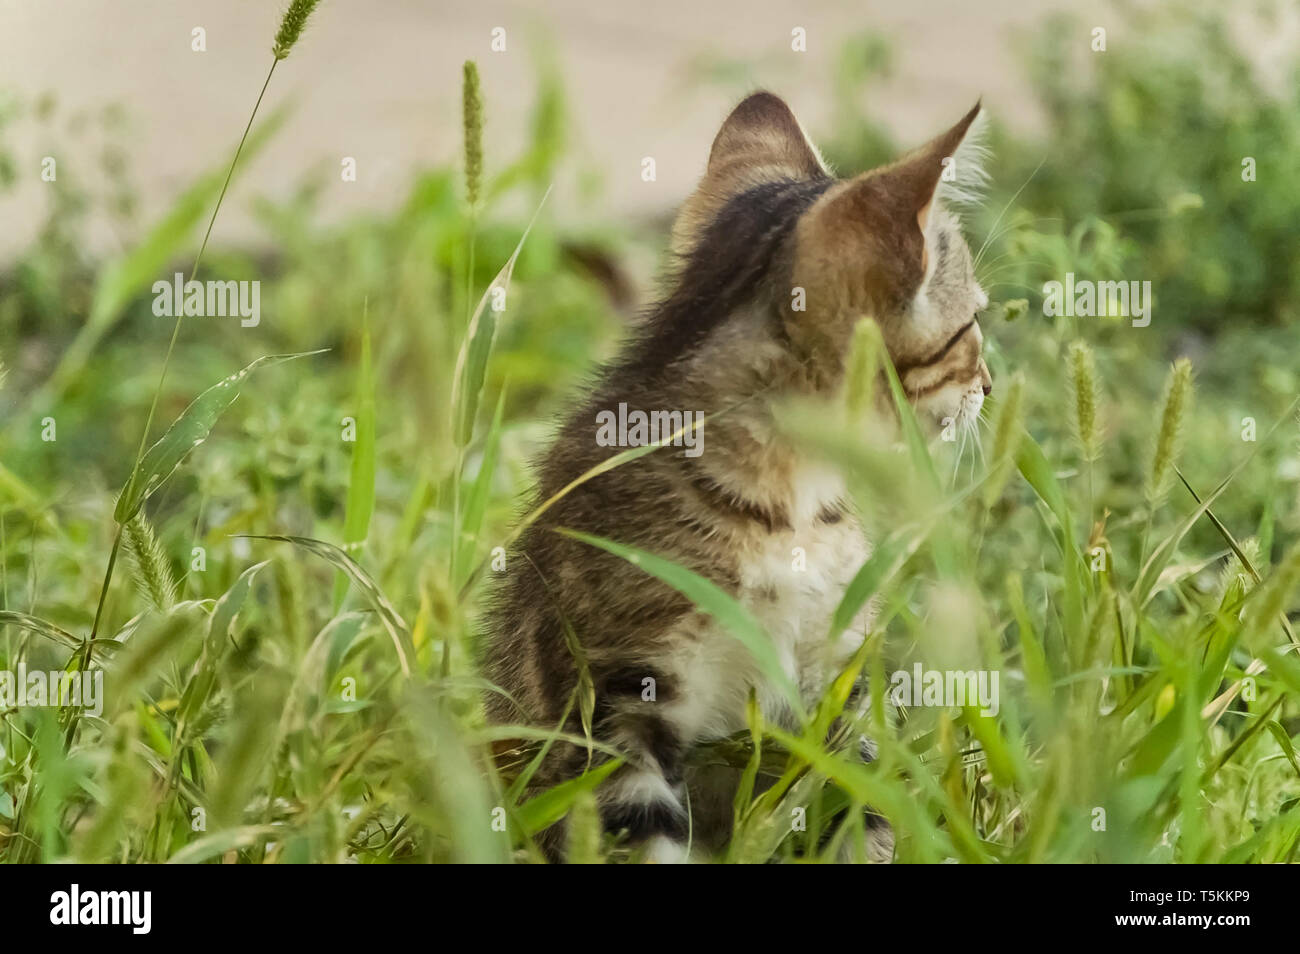 Tabby Kitten in the Grass Turned the Other Direction - Stock Image